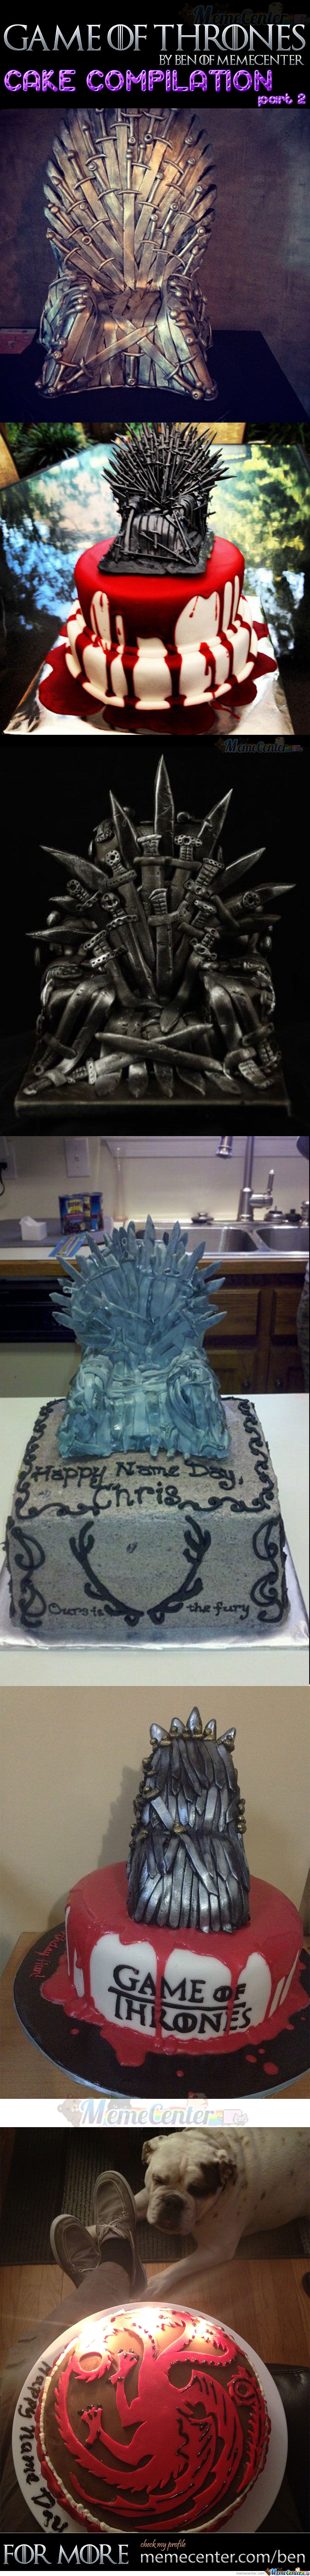 Game Of Thrones Cakes Part 2